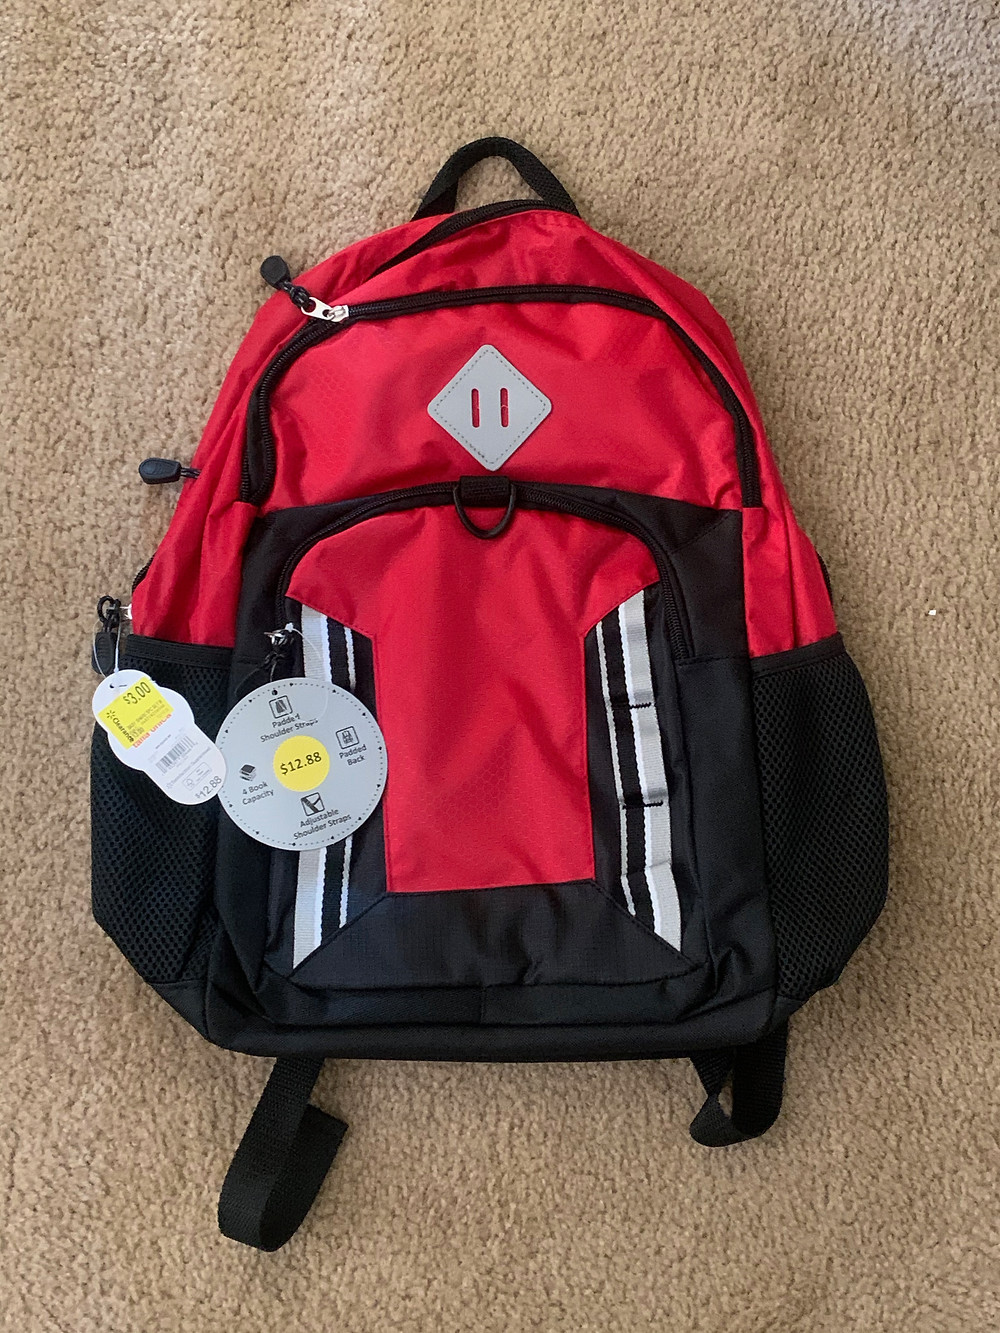 New red school backpack with tags